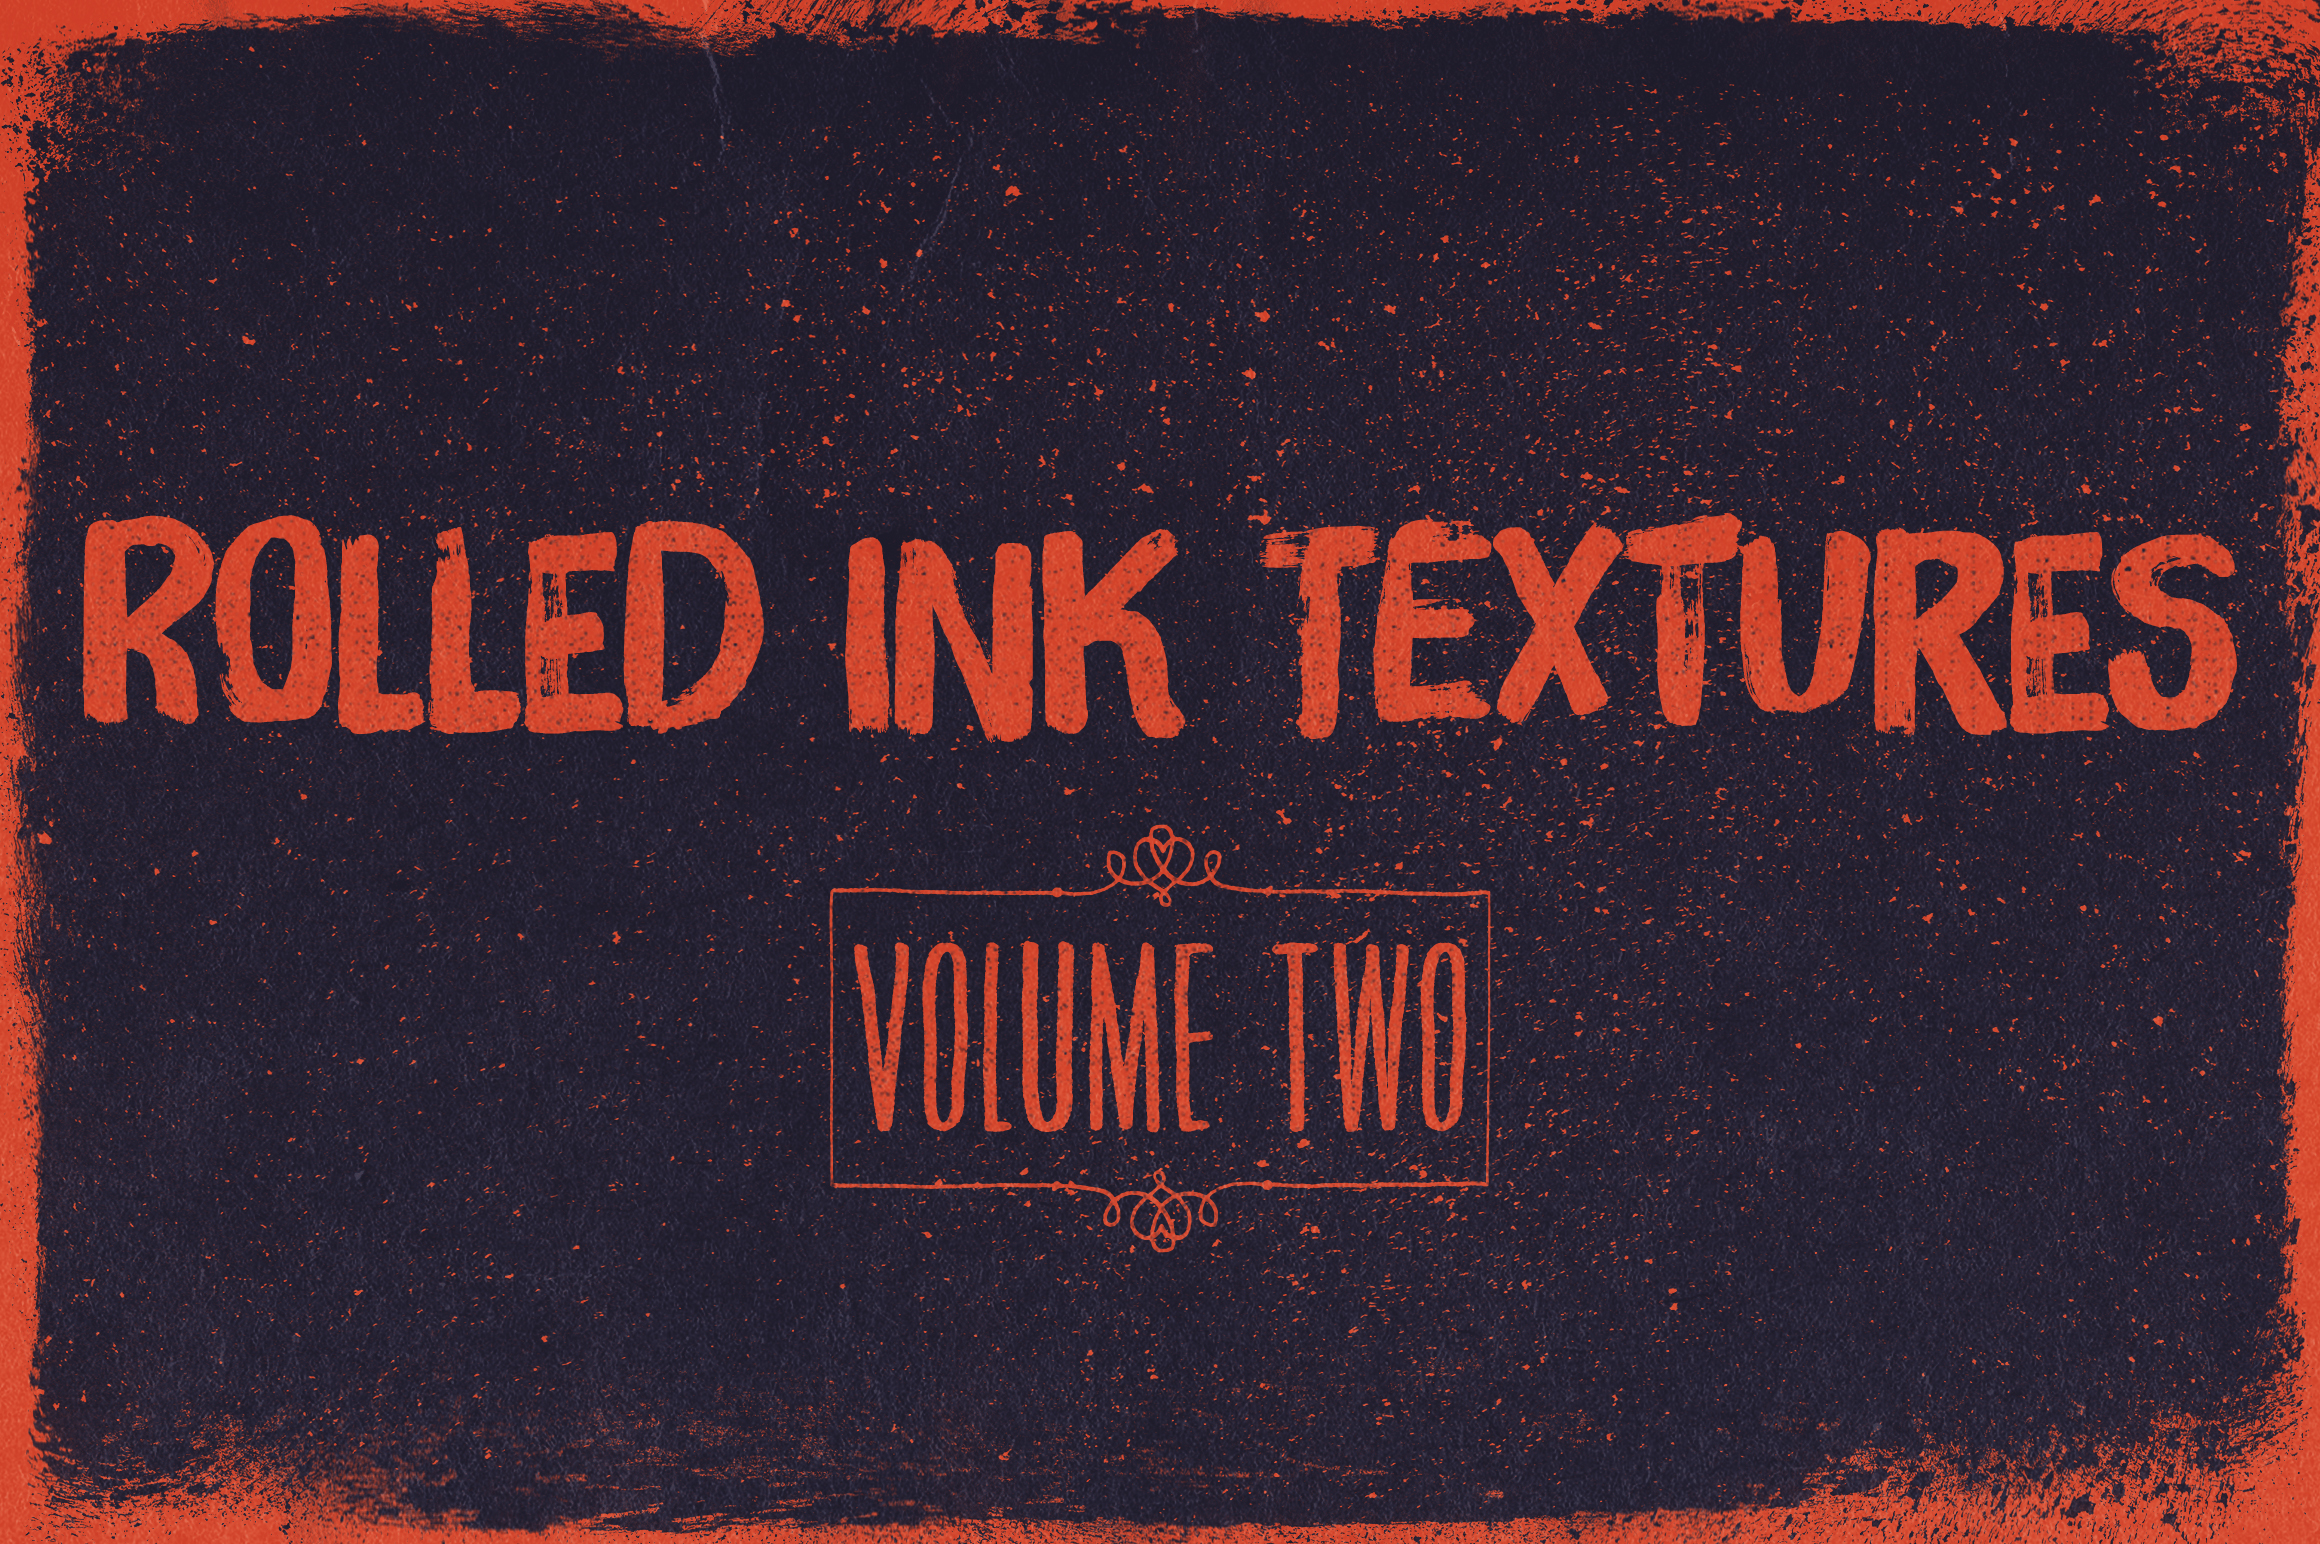 Rolled Ink Textures Volume 02 Graphic Textures By theshopdesignstudio